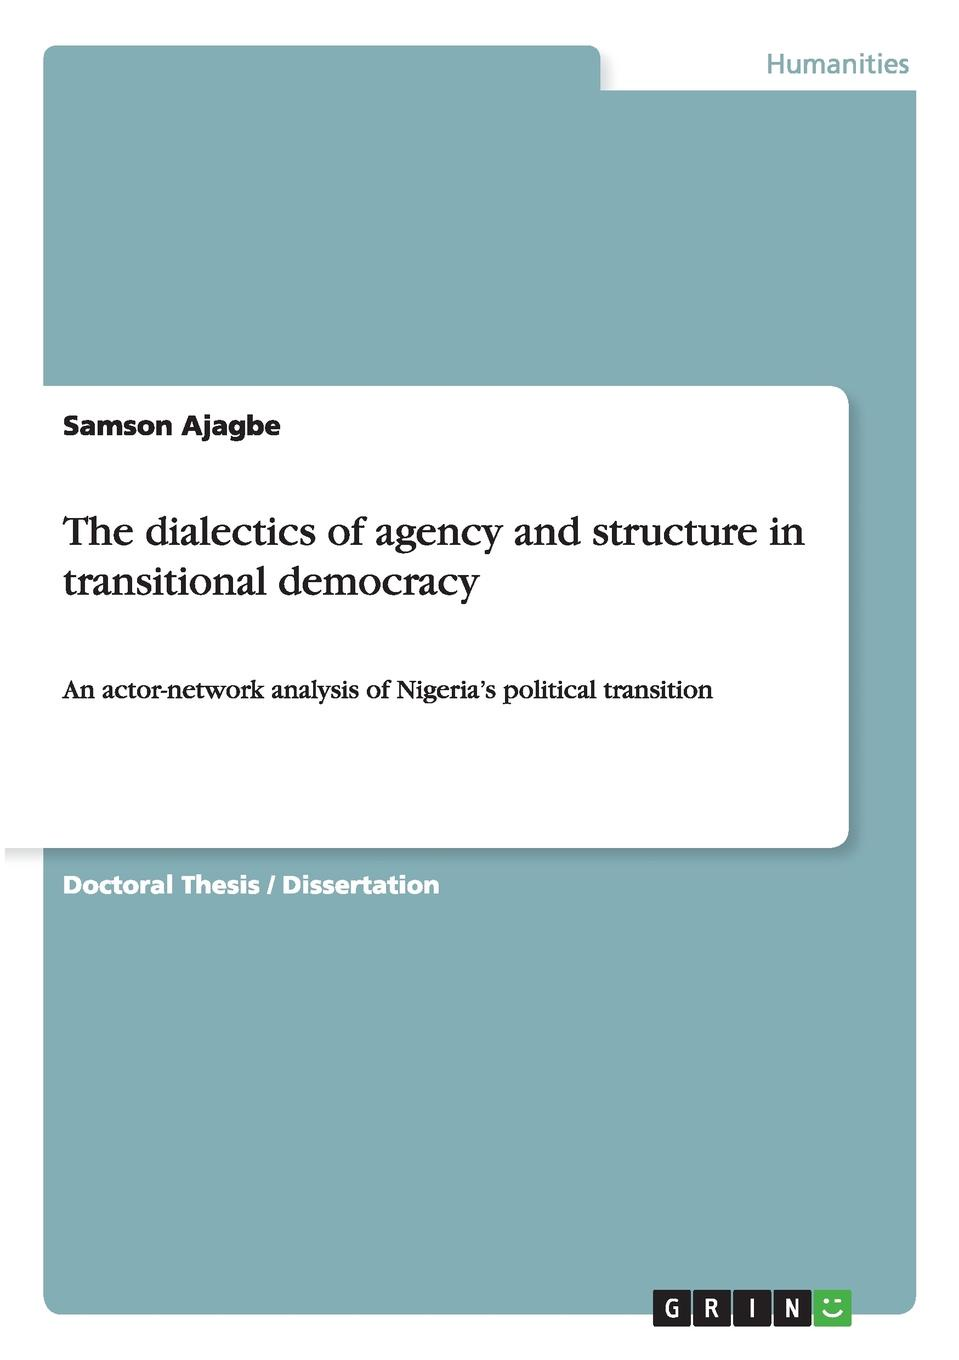 Samson Ajagbe The dialectics of agency and structure in transitional democracy john ishiyama t comparative politics principles of democracy and democratization